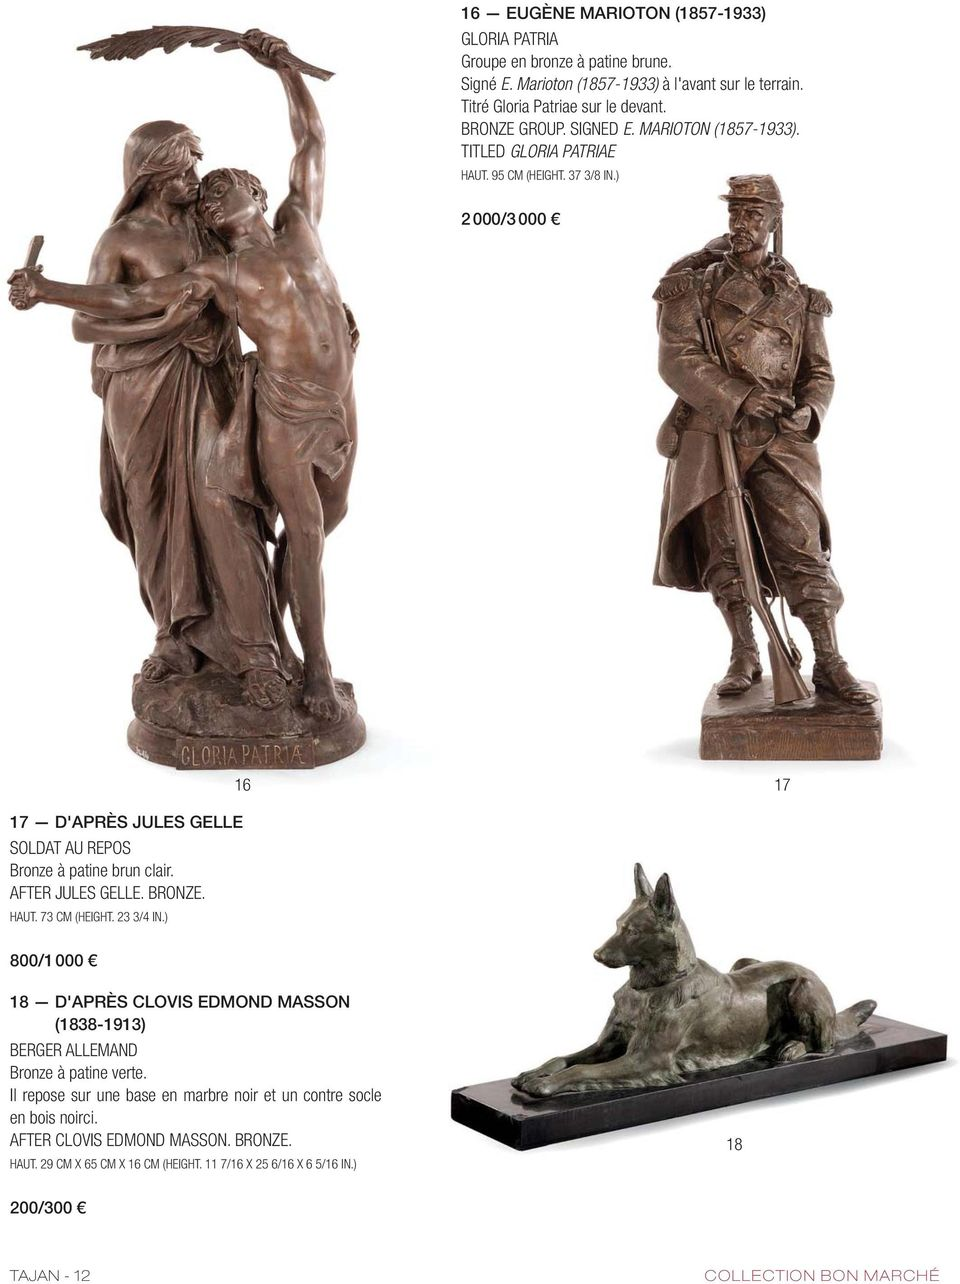 AFTER JULES GELLE. BRONZE. HAUT. 73 CM (HEIGHT. 23 3/4 IN.) 16 17 800/1 000 18 D'APRÈS CLOVIS EDMOND MASSON (1838-1913) BERGER ALLEMAND Bronze à patine verte.